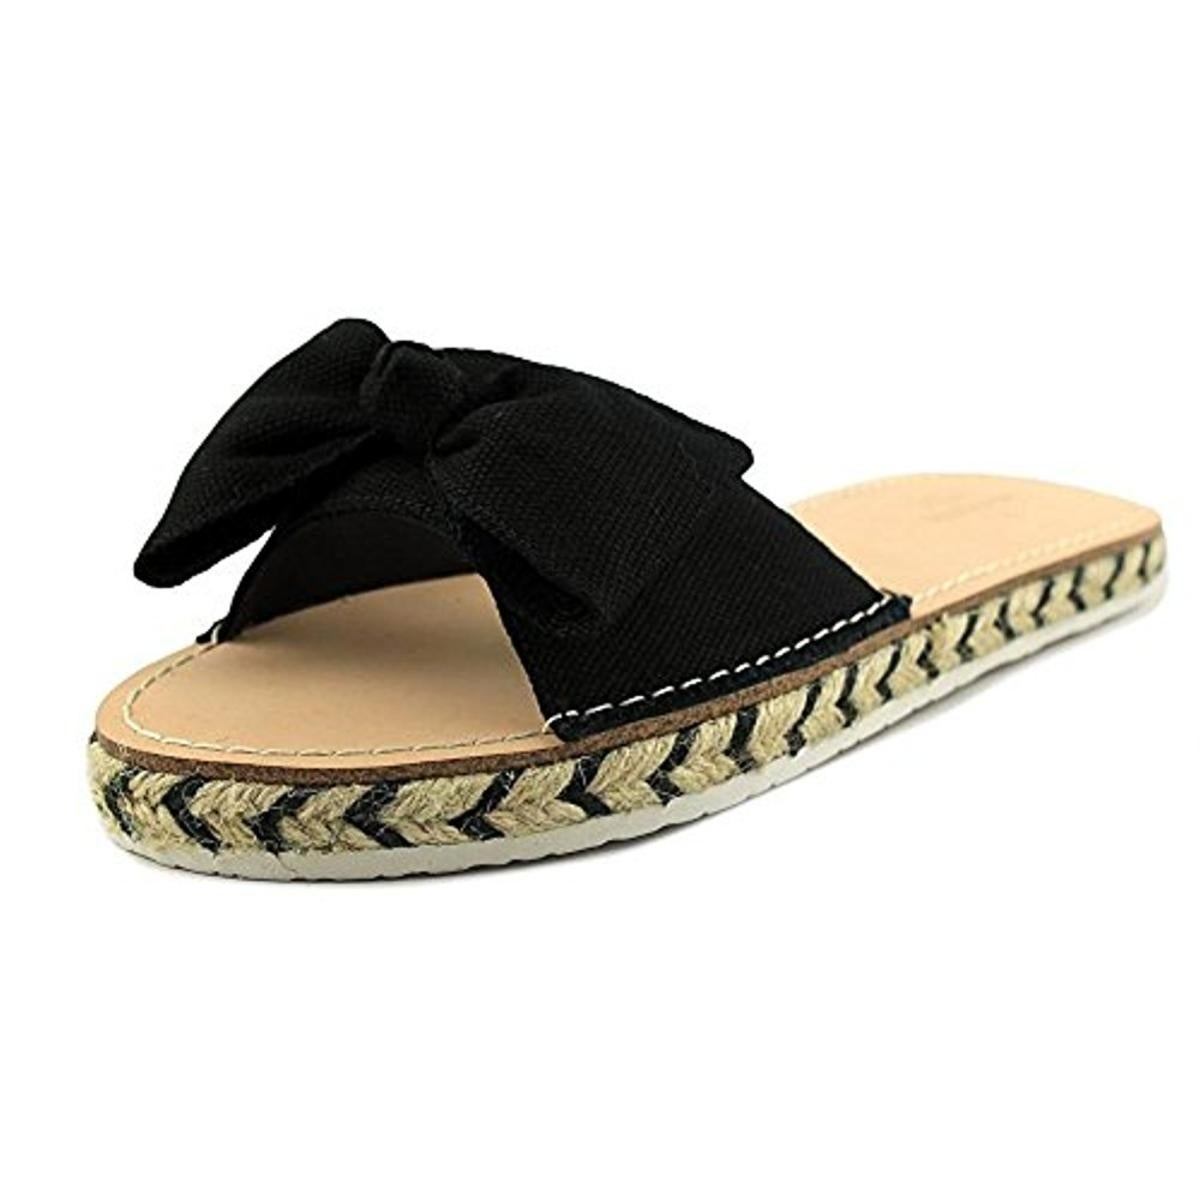 340bd6e9c7fa Shop Kate Spade Womens Idalah Slide Sandals Canvas Espadrille - Free  Shipping On Orders Over  45 - Overstock - 20982980